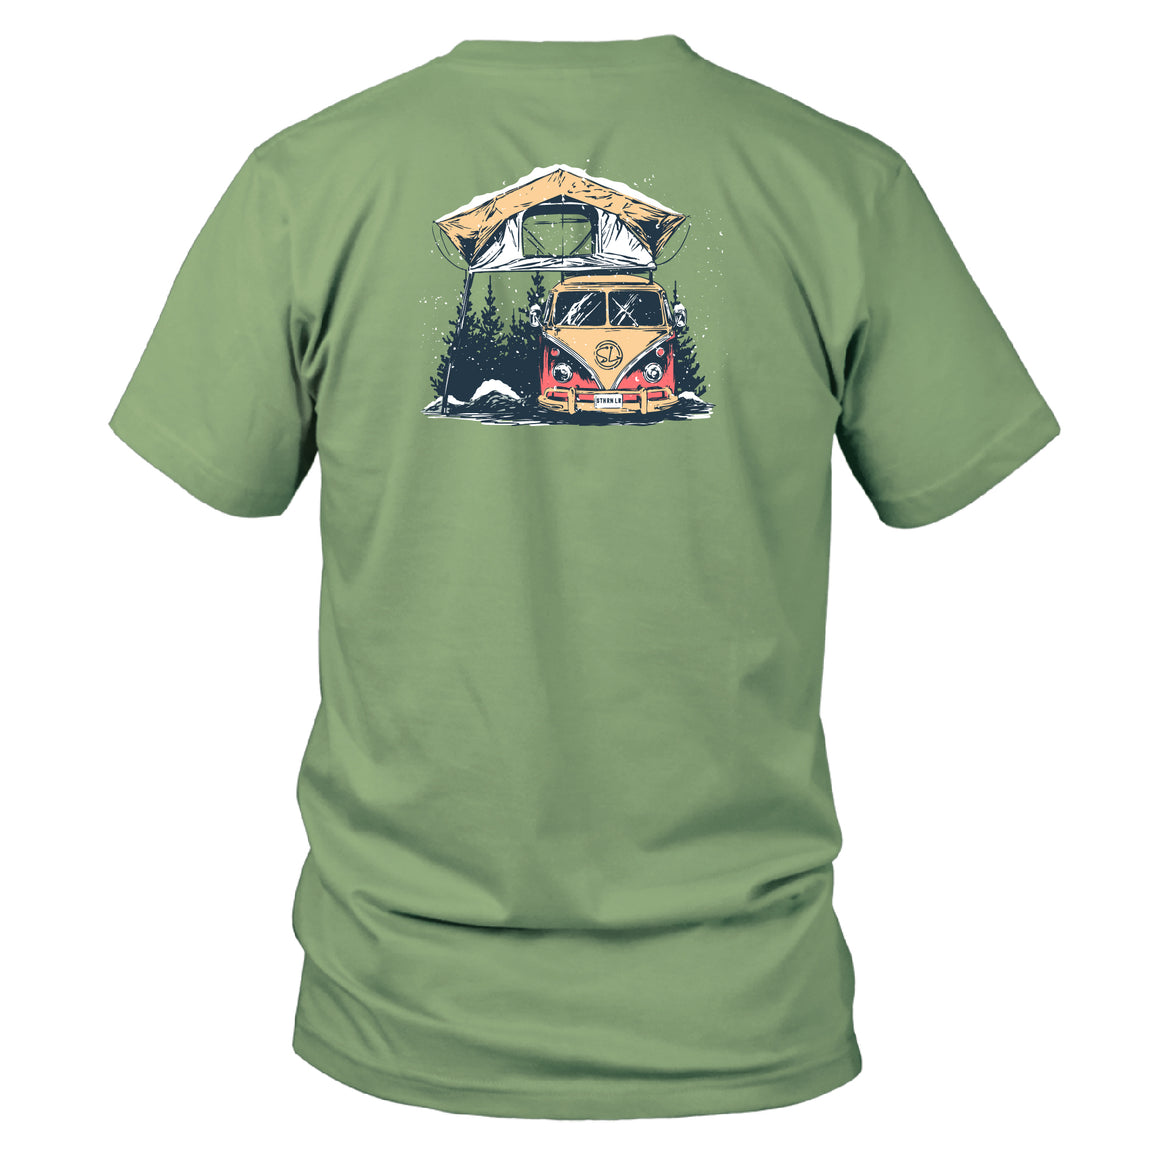 Youth & Toddler - Short Sleeve Tee - VW Camper - Bay